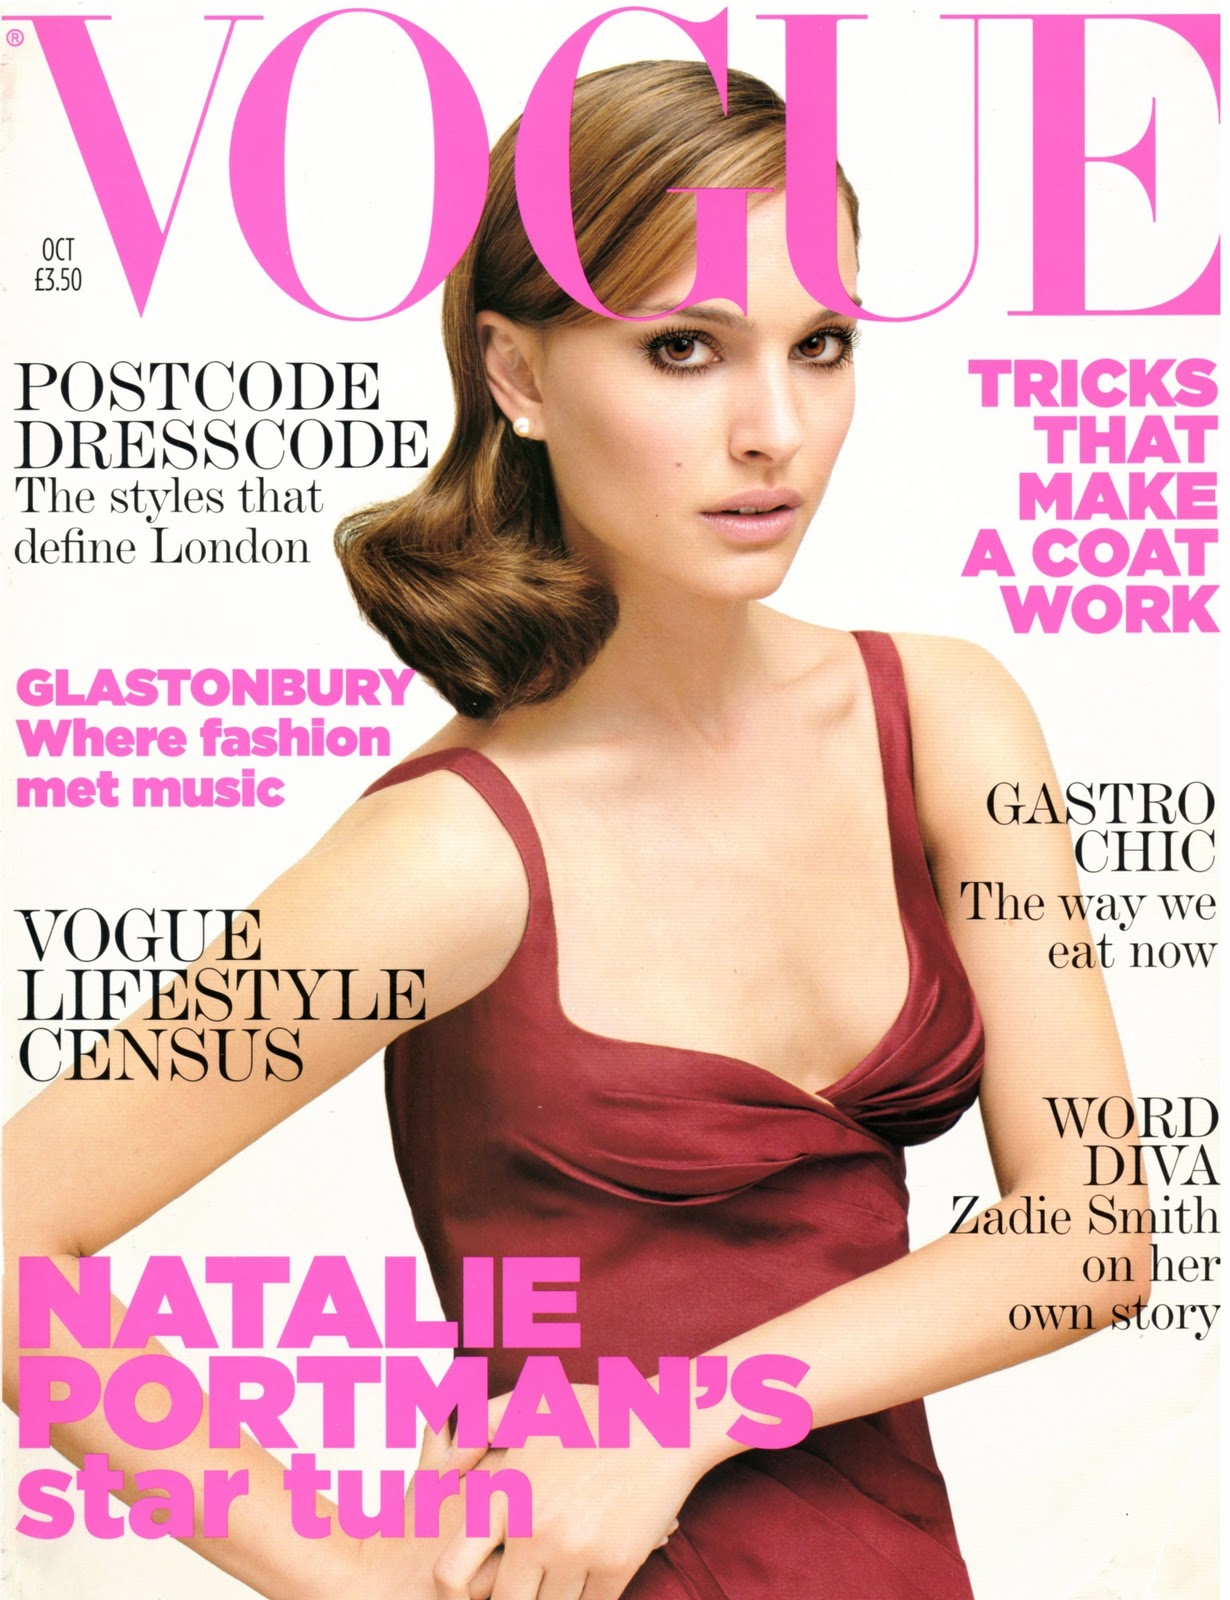 http://3.bp.blogspot.com/_s5f7btuhJwk/TQfNZYWWM6I/AAAAAAAAAcs/i9rHKORQ_8Q/s1600/Natalie+Portman+On+Cover+Of+Vogue+October+2005.jpg